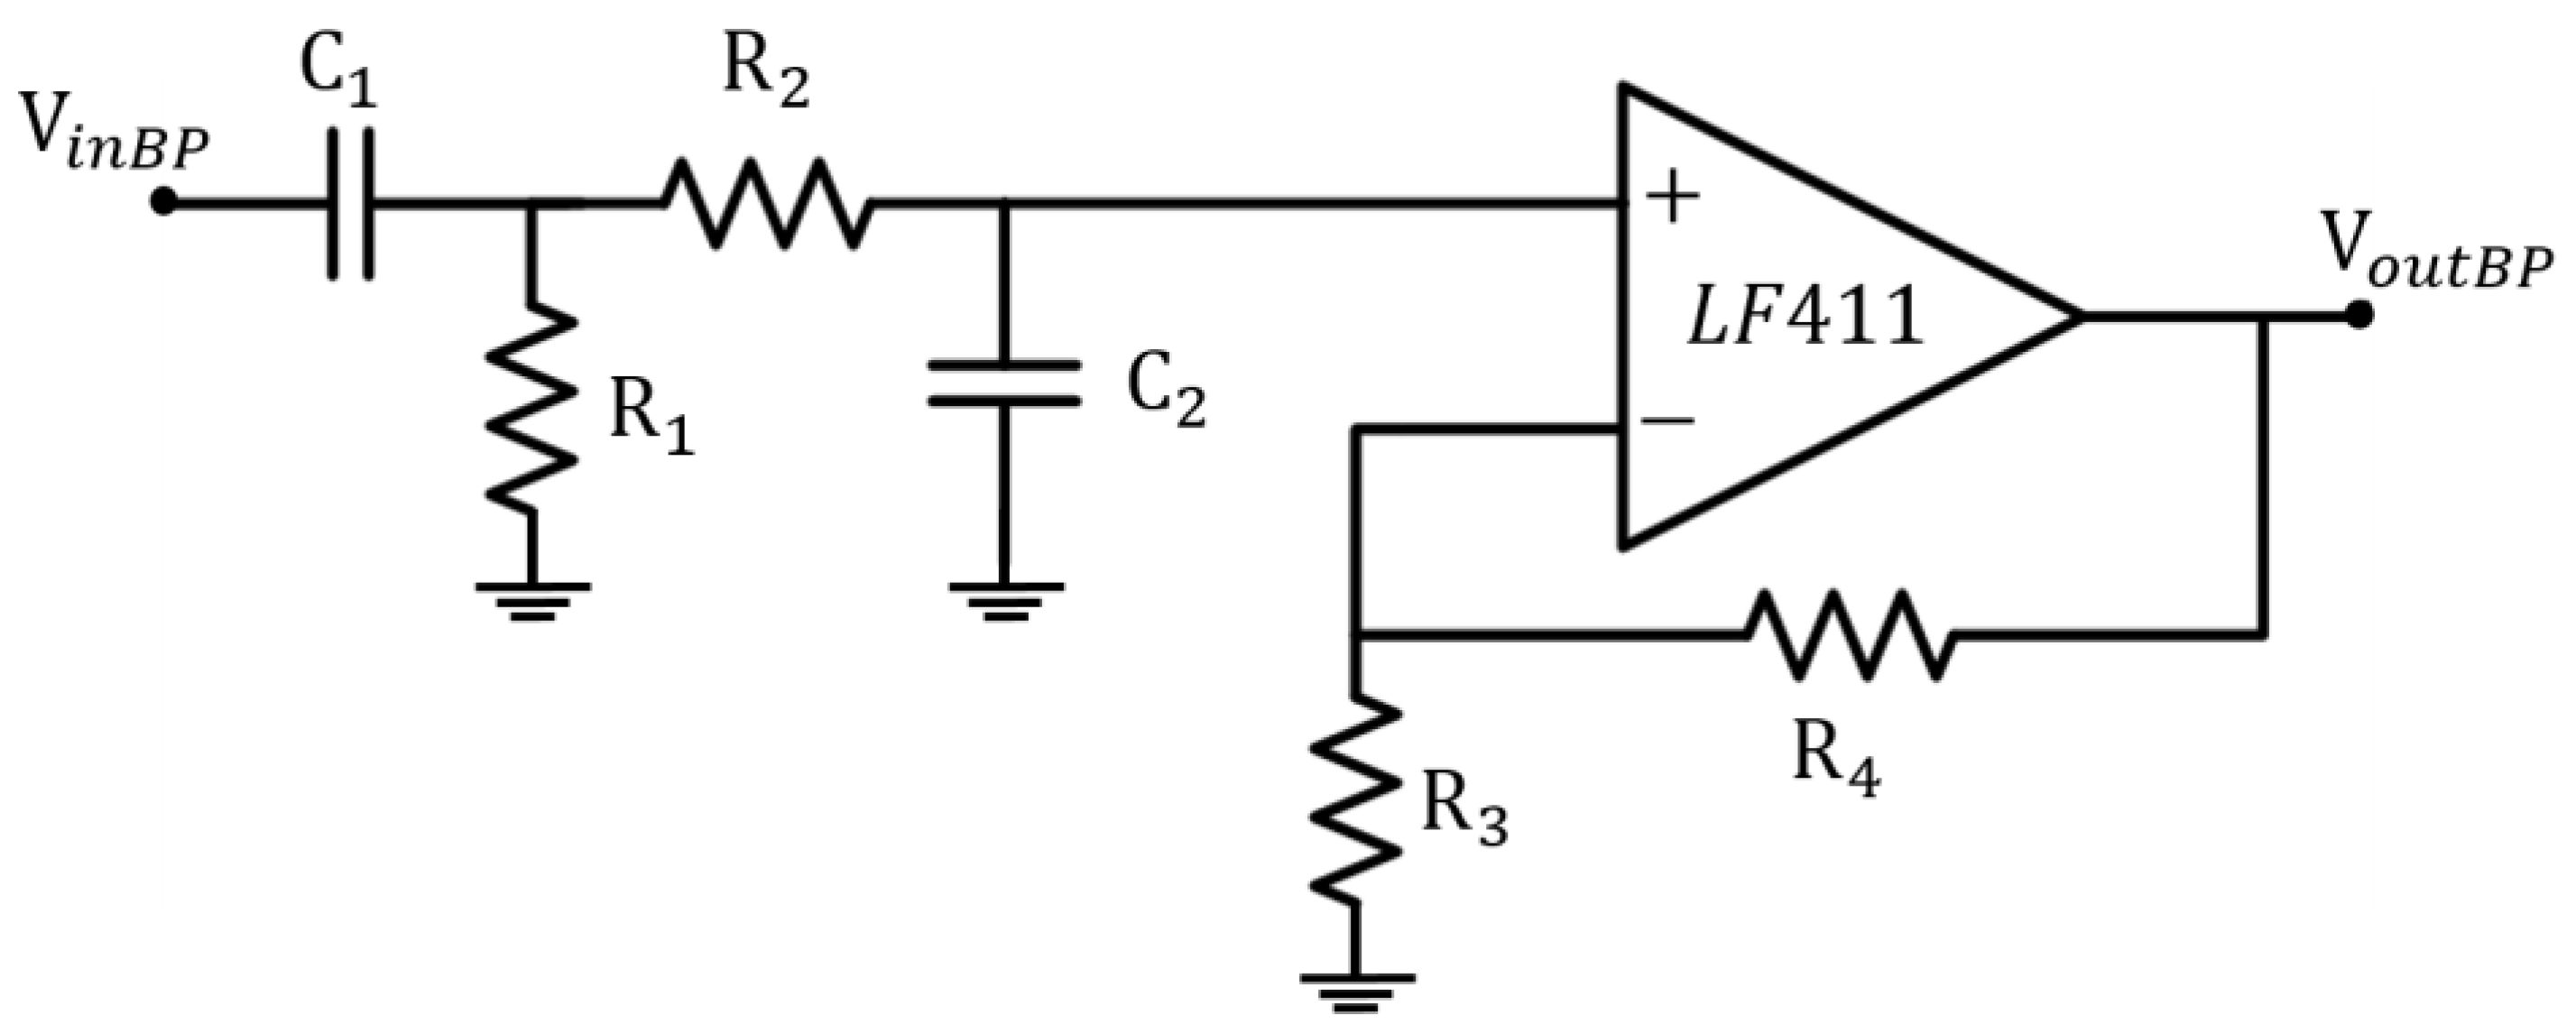 Sensors Free Full Text An Electronic System For The Contactless Diagram Of A Op Amp Notch Filter Using Twin T Configuration And Two 17 02474 G004